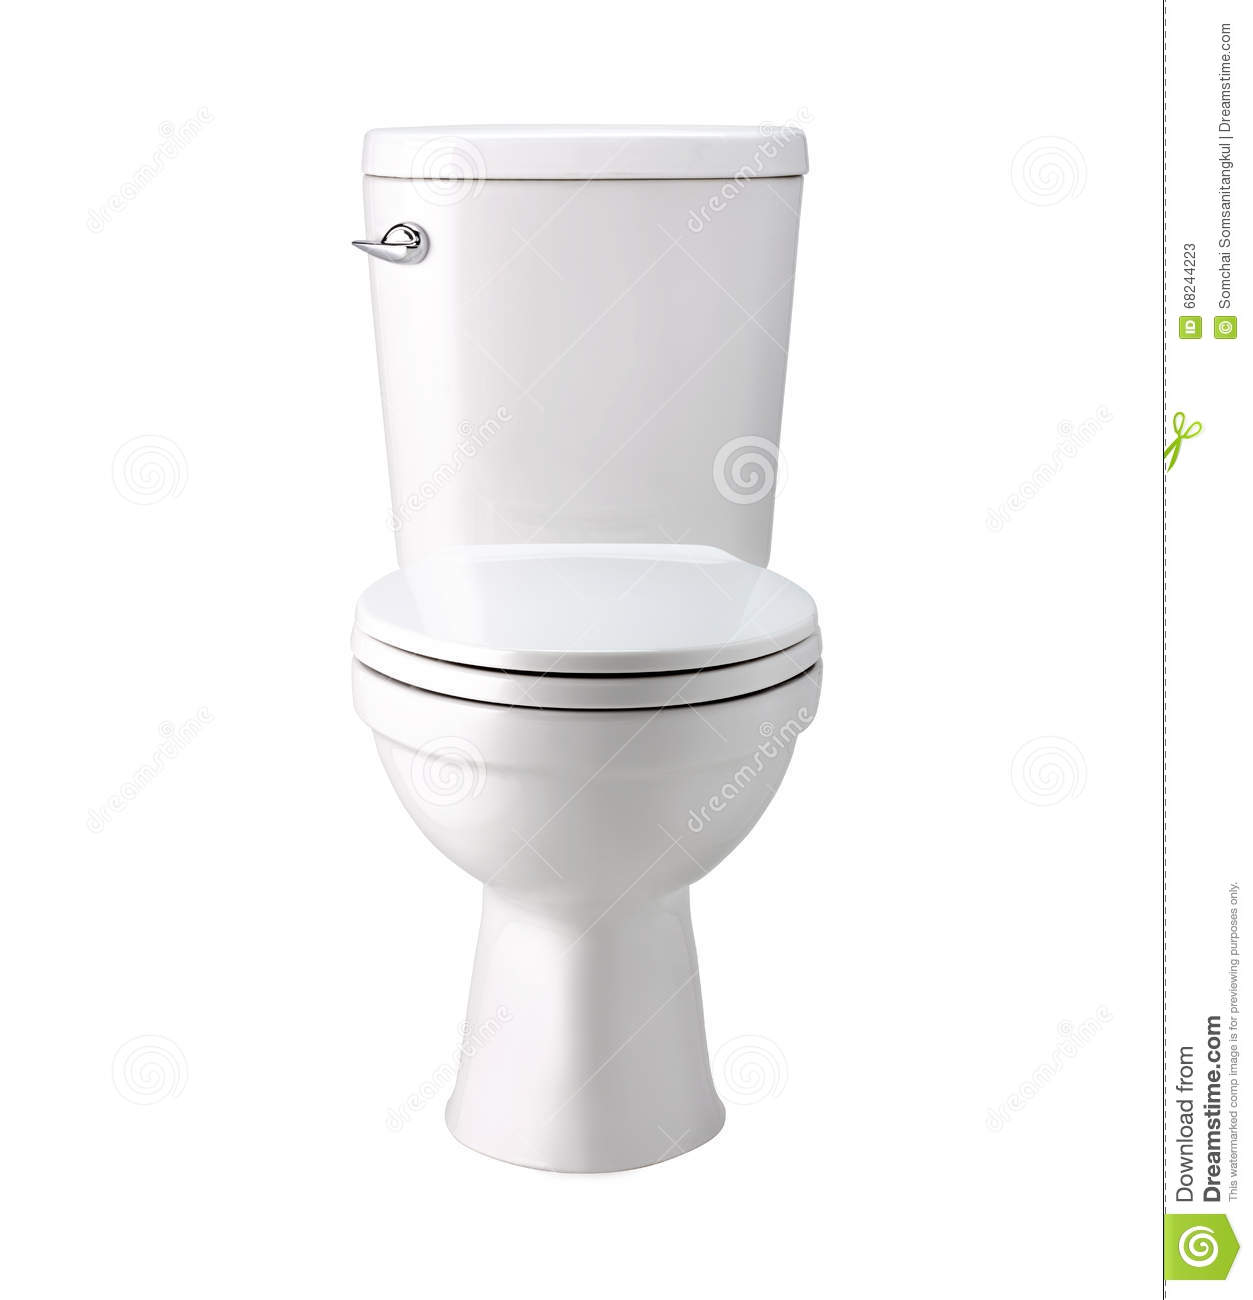 how to choose toilet bowl